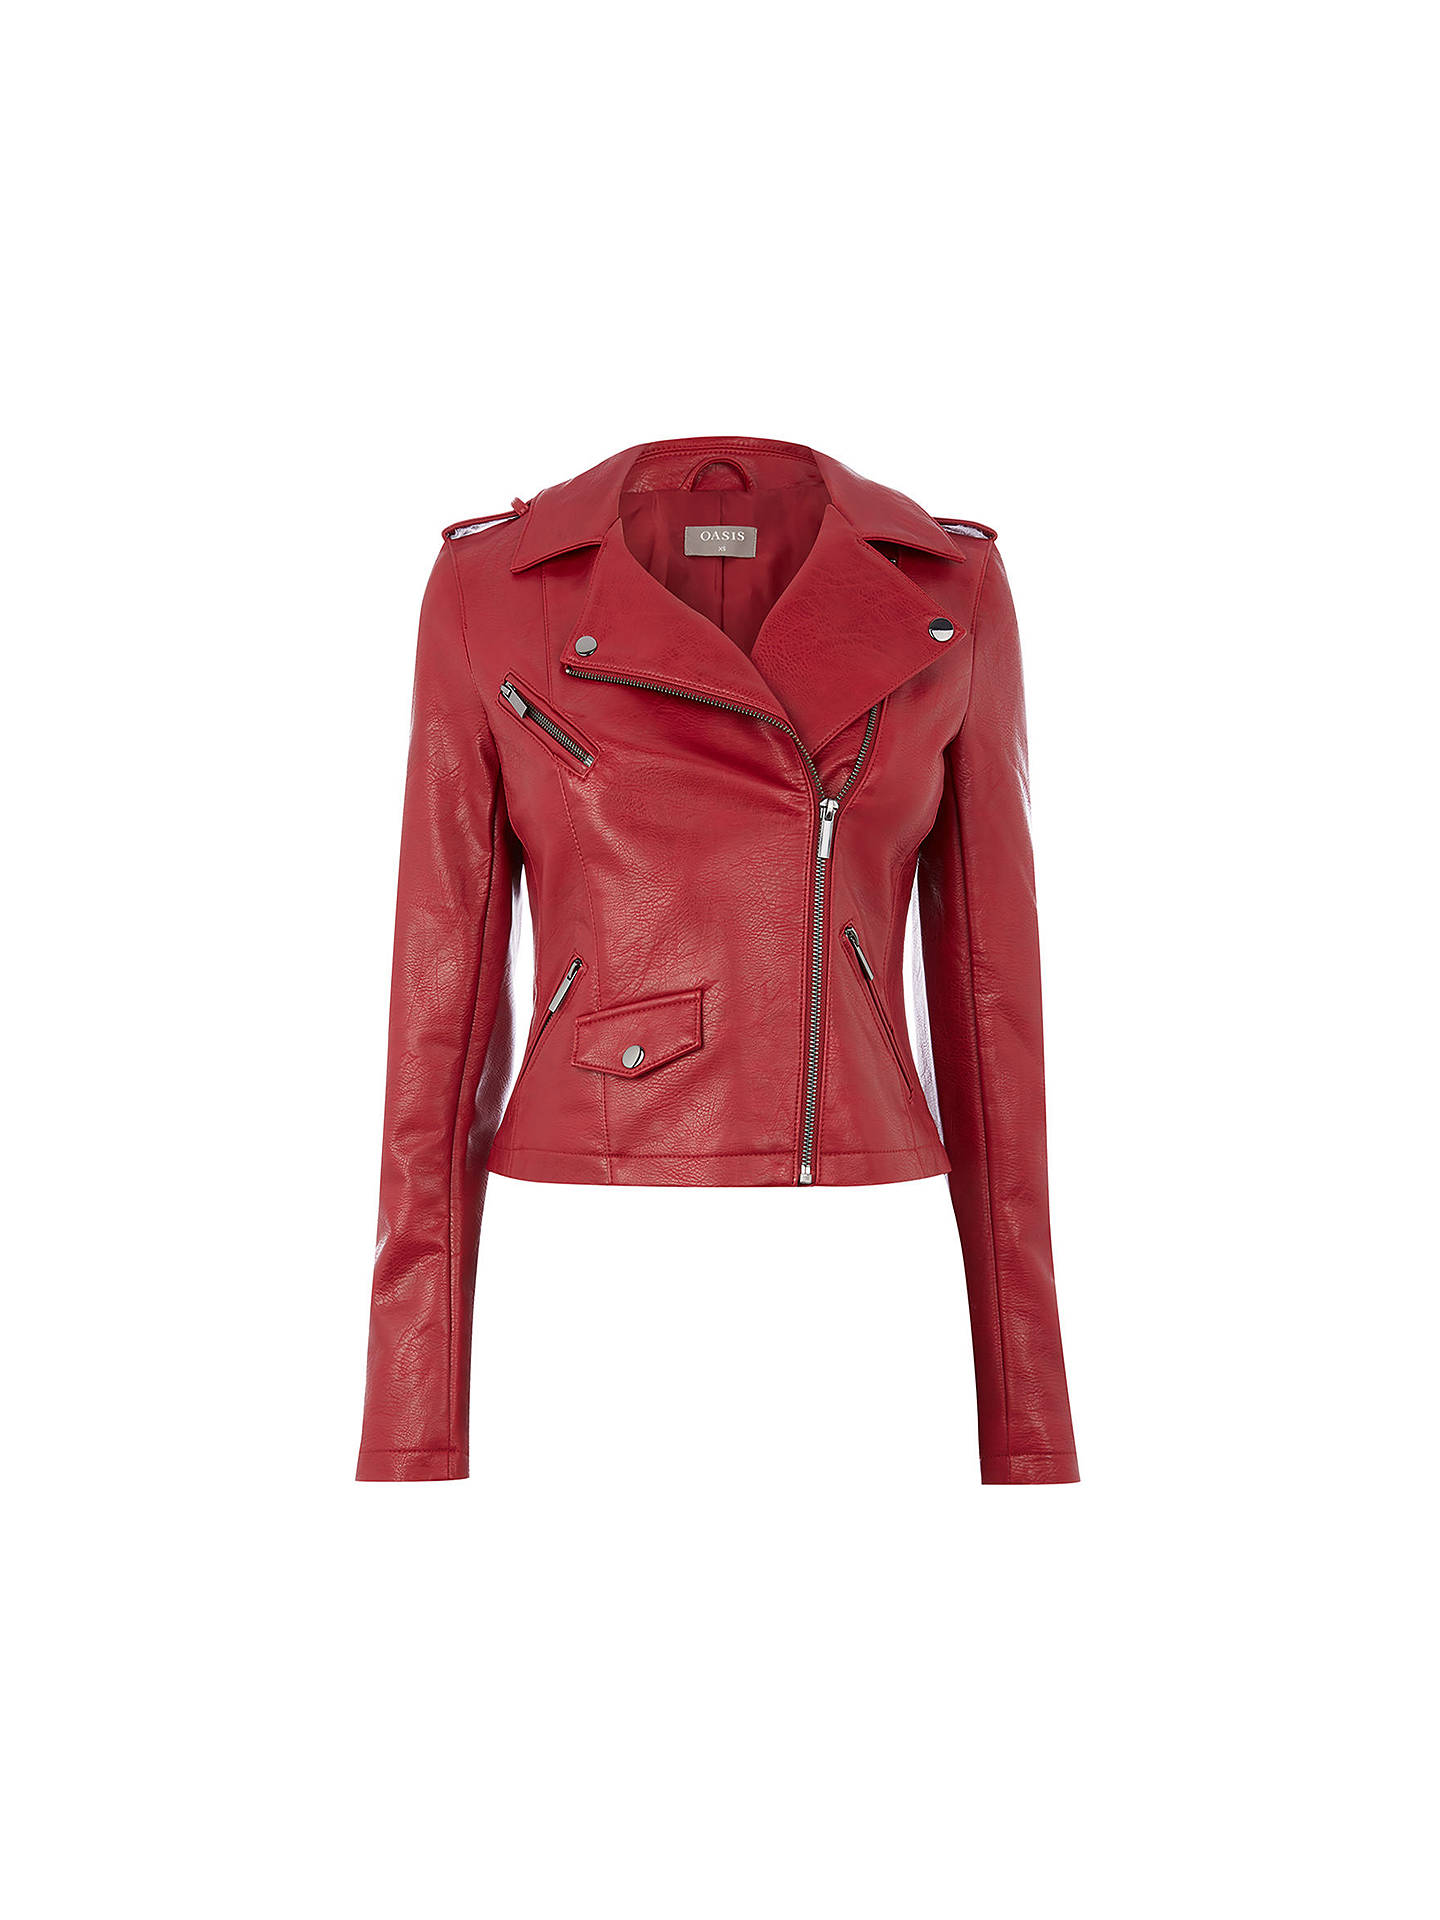 a858259915f2 ... Buy Oasis Lucy Faux Leather Biker Jacket, Burgundy, XS Online at  johnlewis.com ...